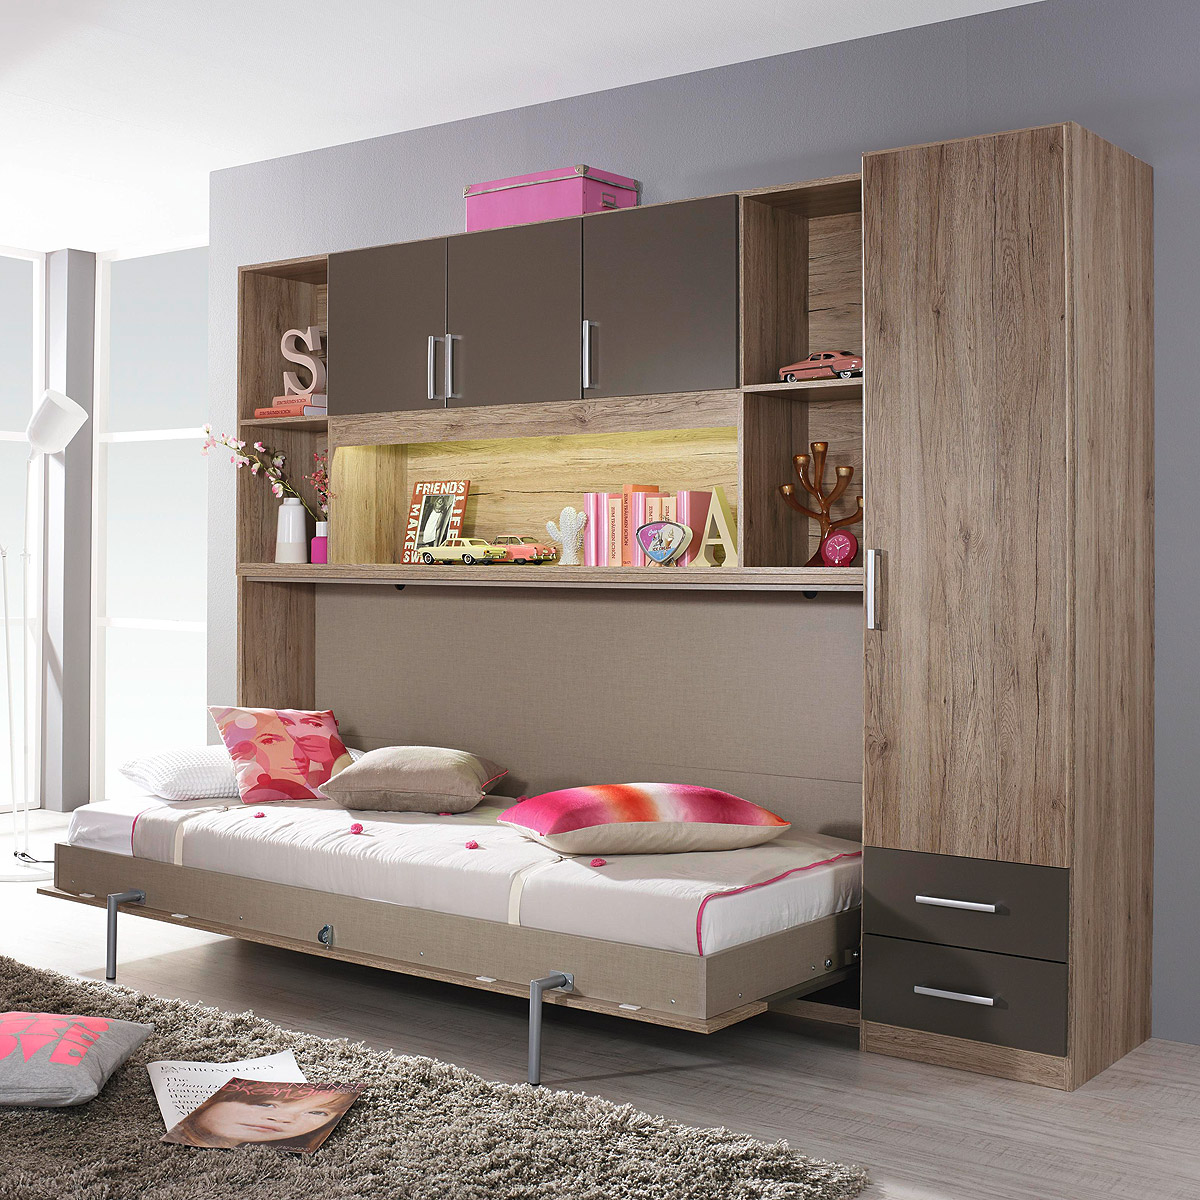 klappbett set albero bett regal kleiderschrank eiche sanremo lavagrau 90x200 cm ebay. Black Bedroom Furniture Sets. Home Design Ideas